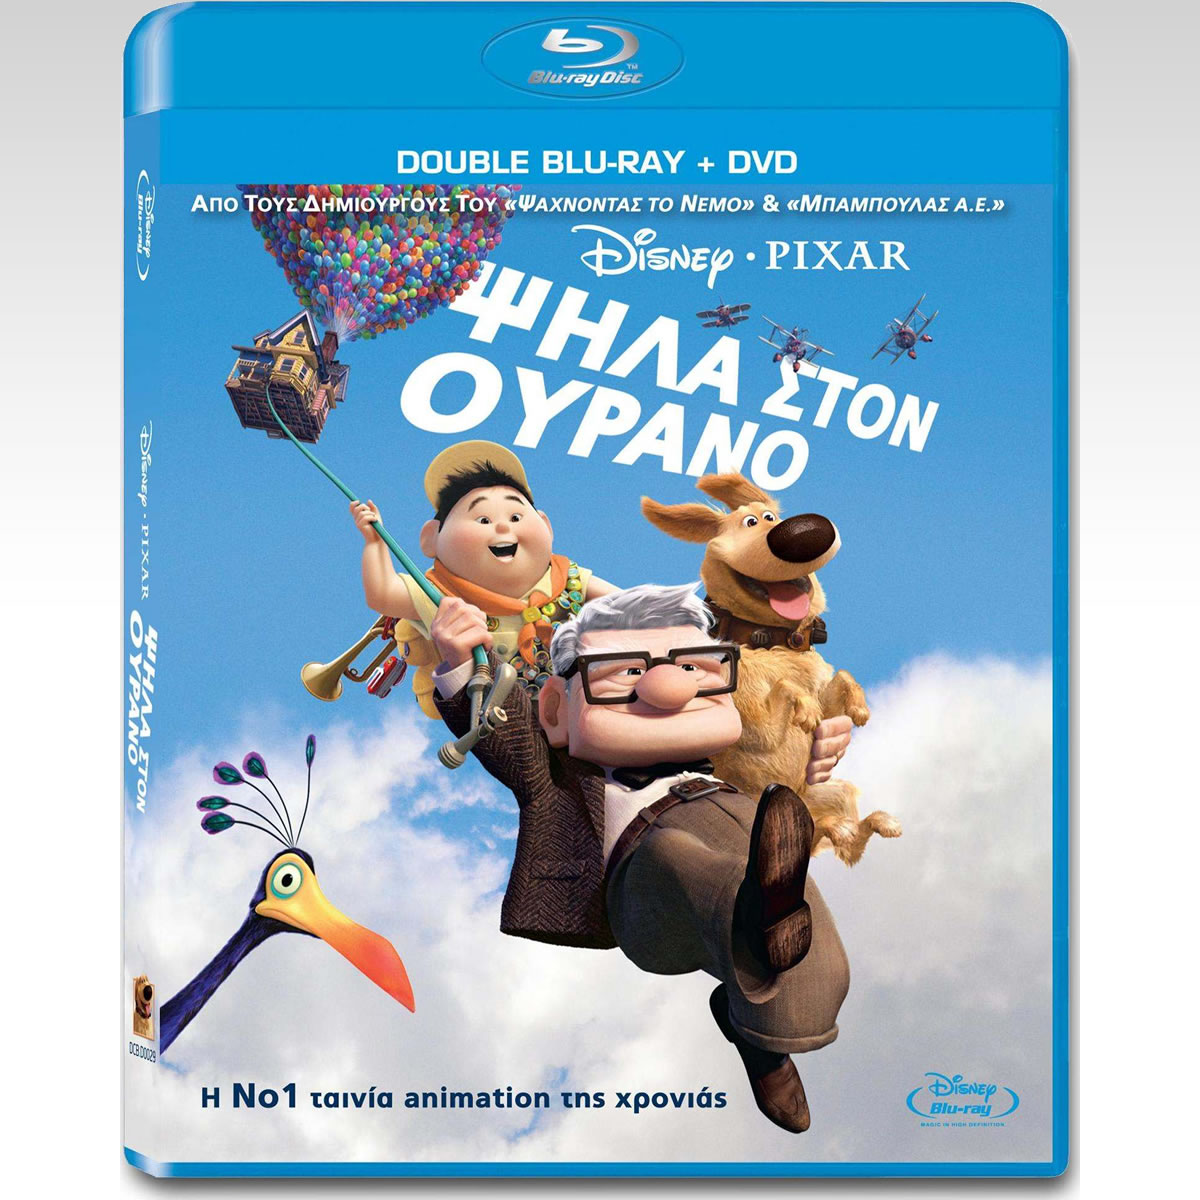 UP!  - ���� ���� ������ BD COMBO (2 BLU-RAY + DVD) *��� ��������������*